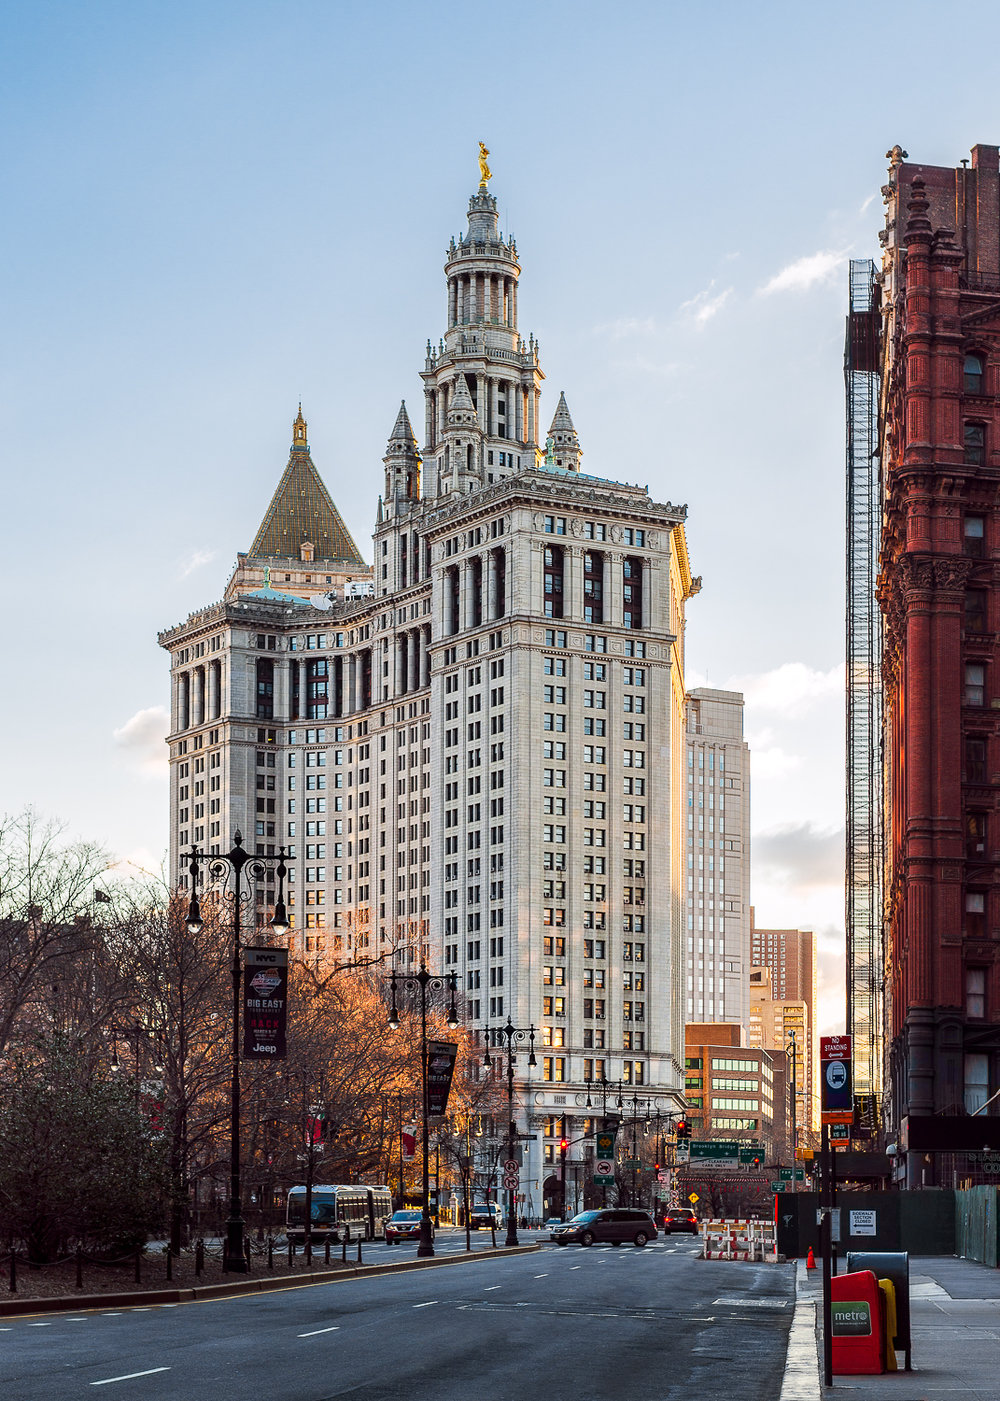 Manhattan Municipal Building was built from 1907-1914 by William M. Kendall to accommodate the growing governmental office space needed to hold nearly 2000 government workers. It is one of the largest governmental buildings in the world.